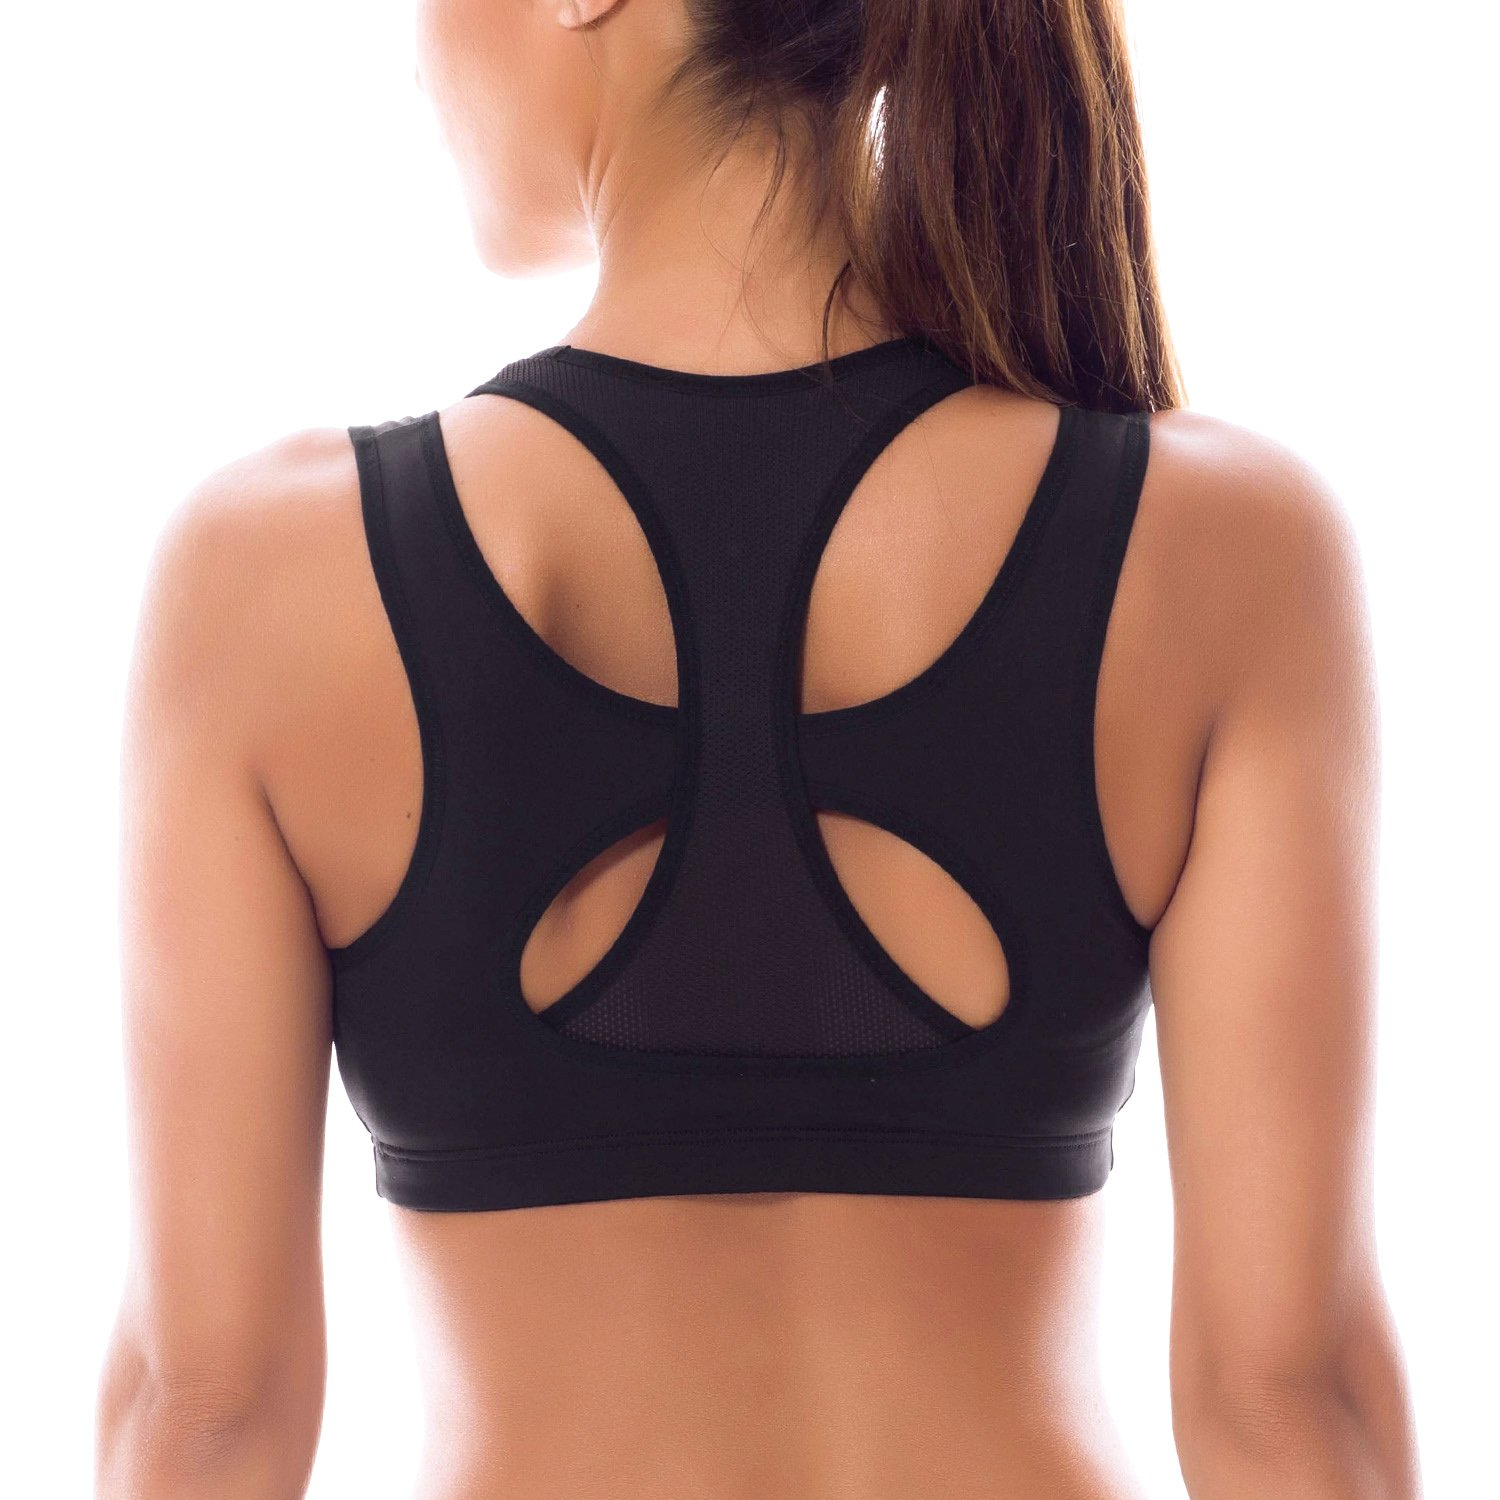 Amazon Best Sellers: Best Women's Sports Bras